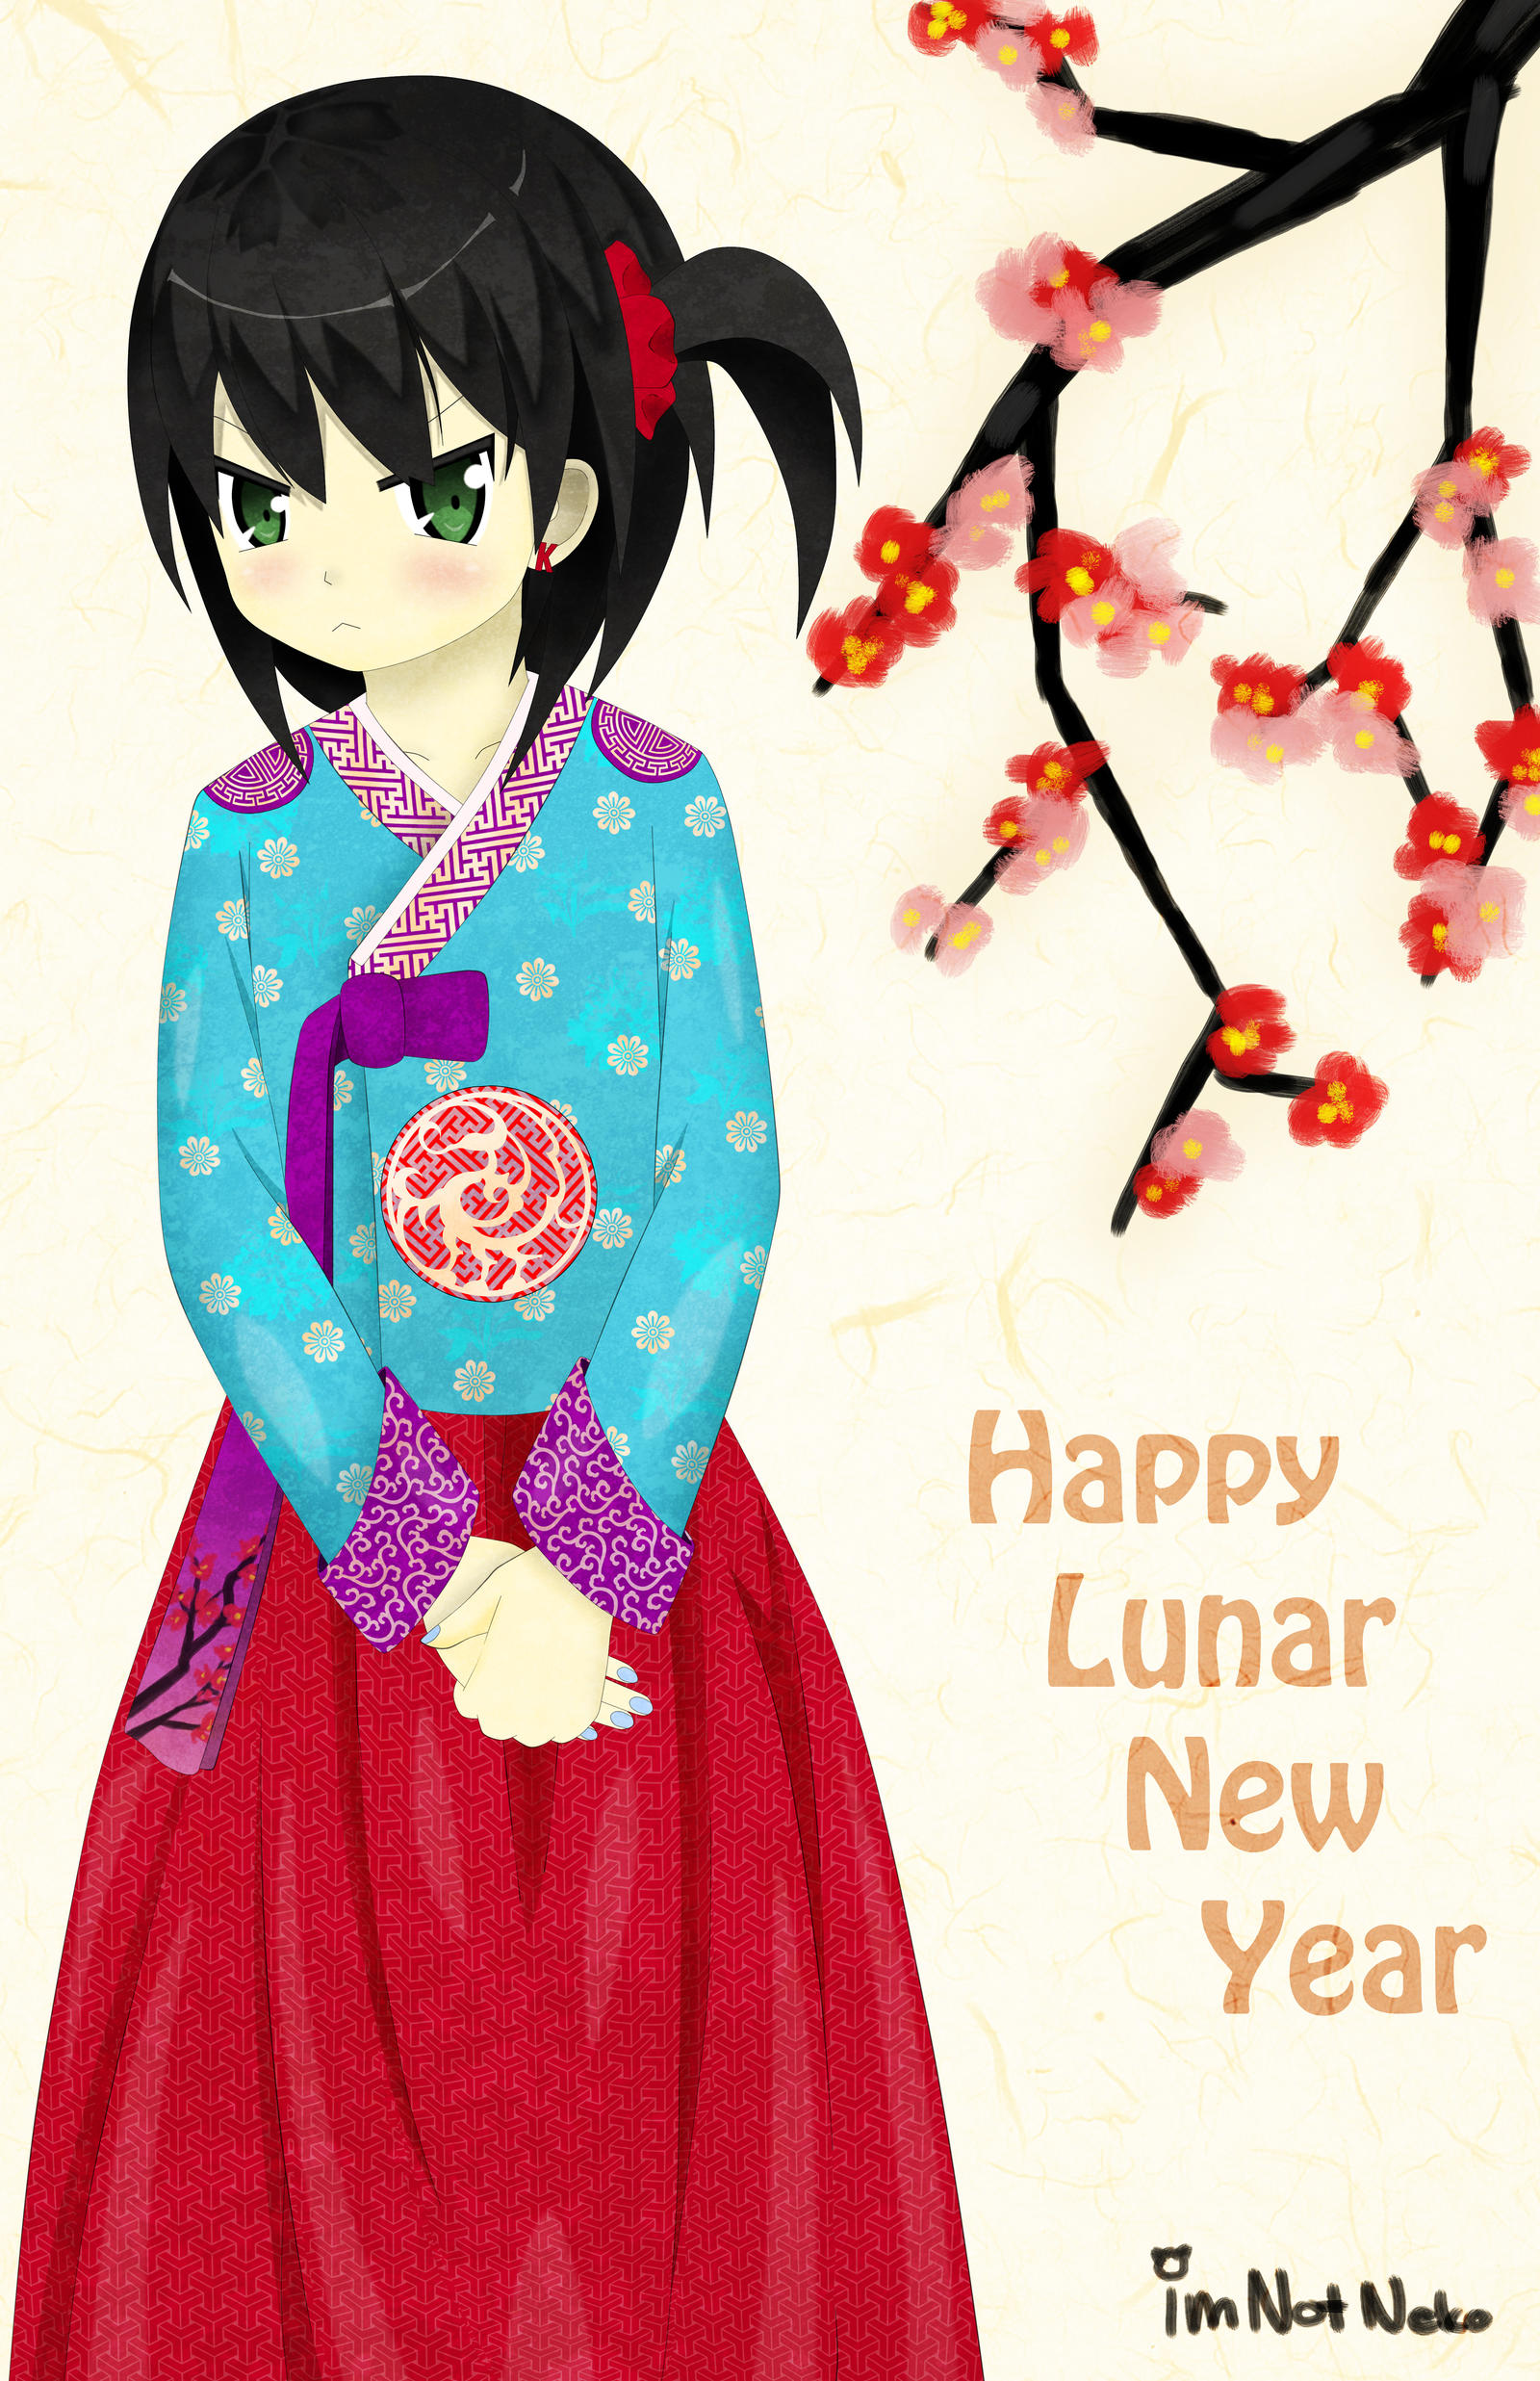 Lunar New Year Food Symbolism